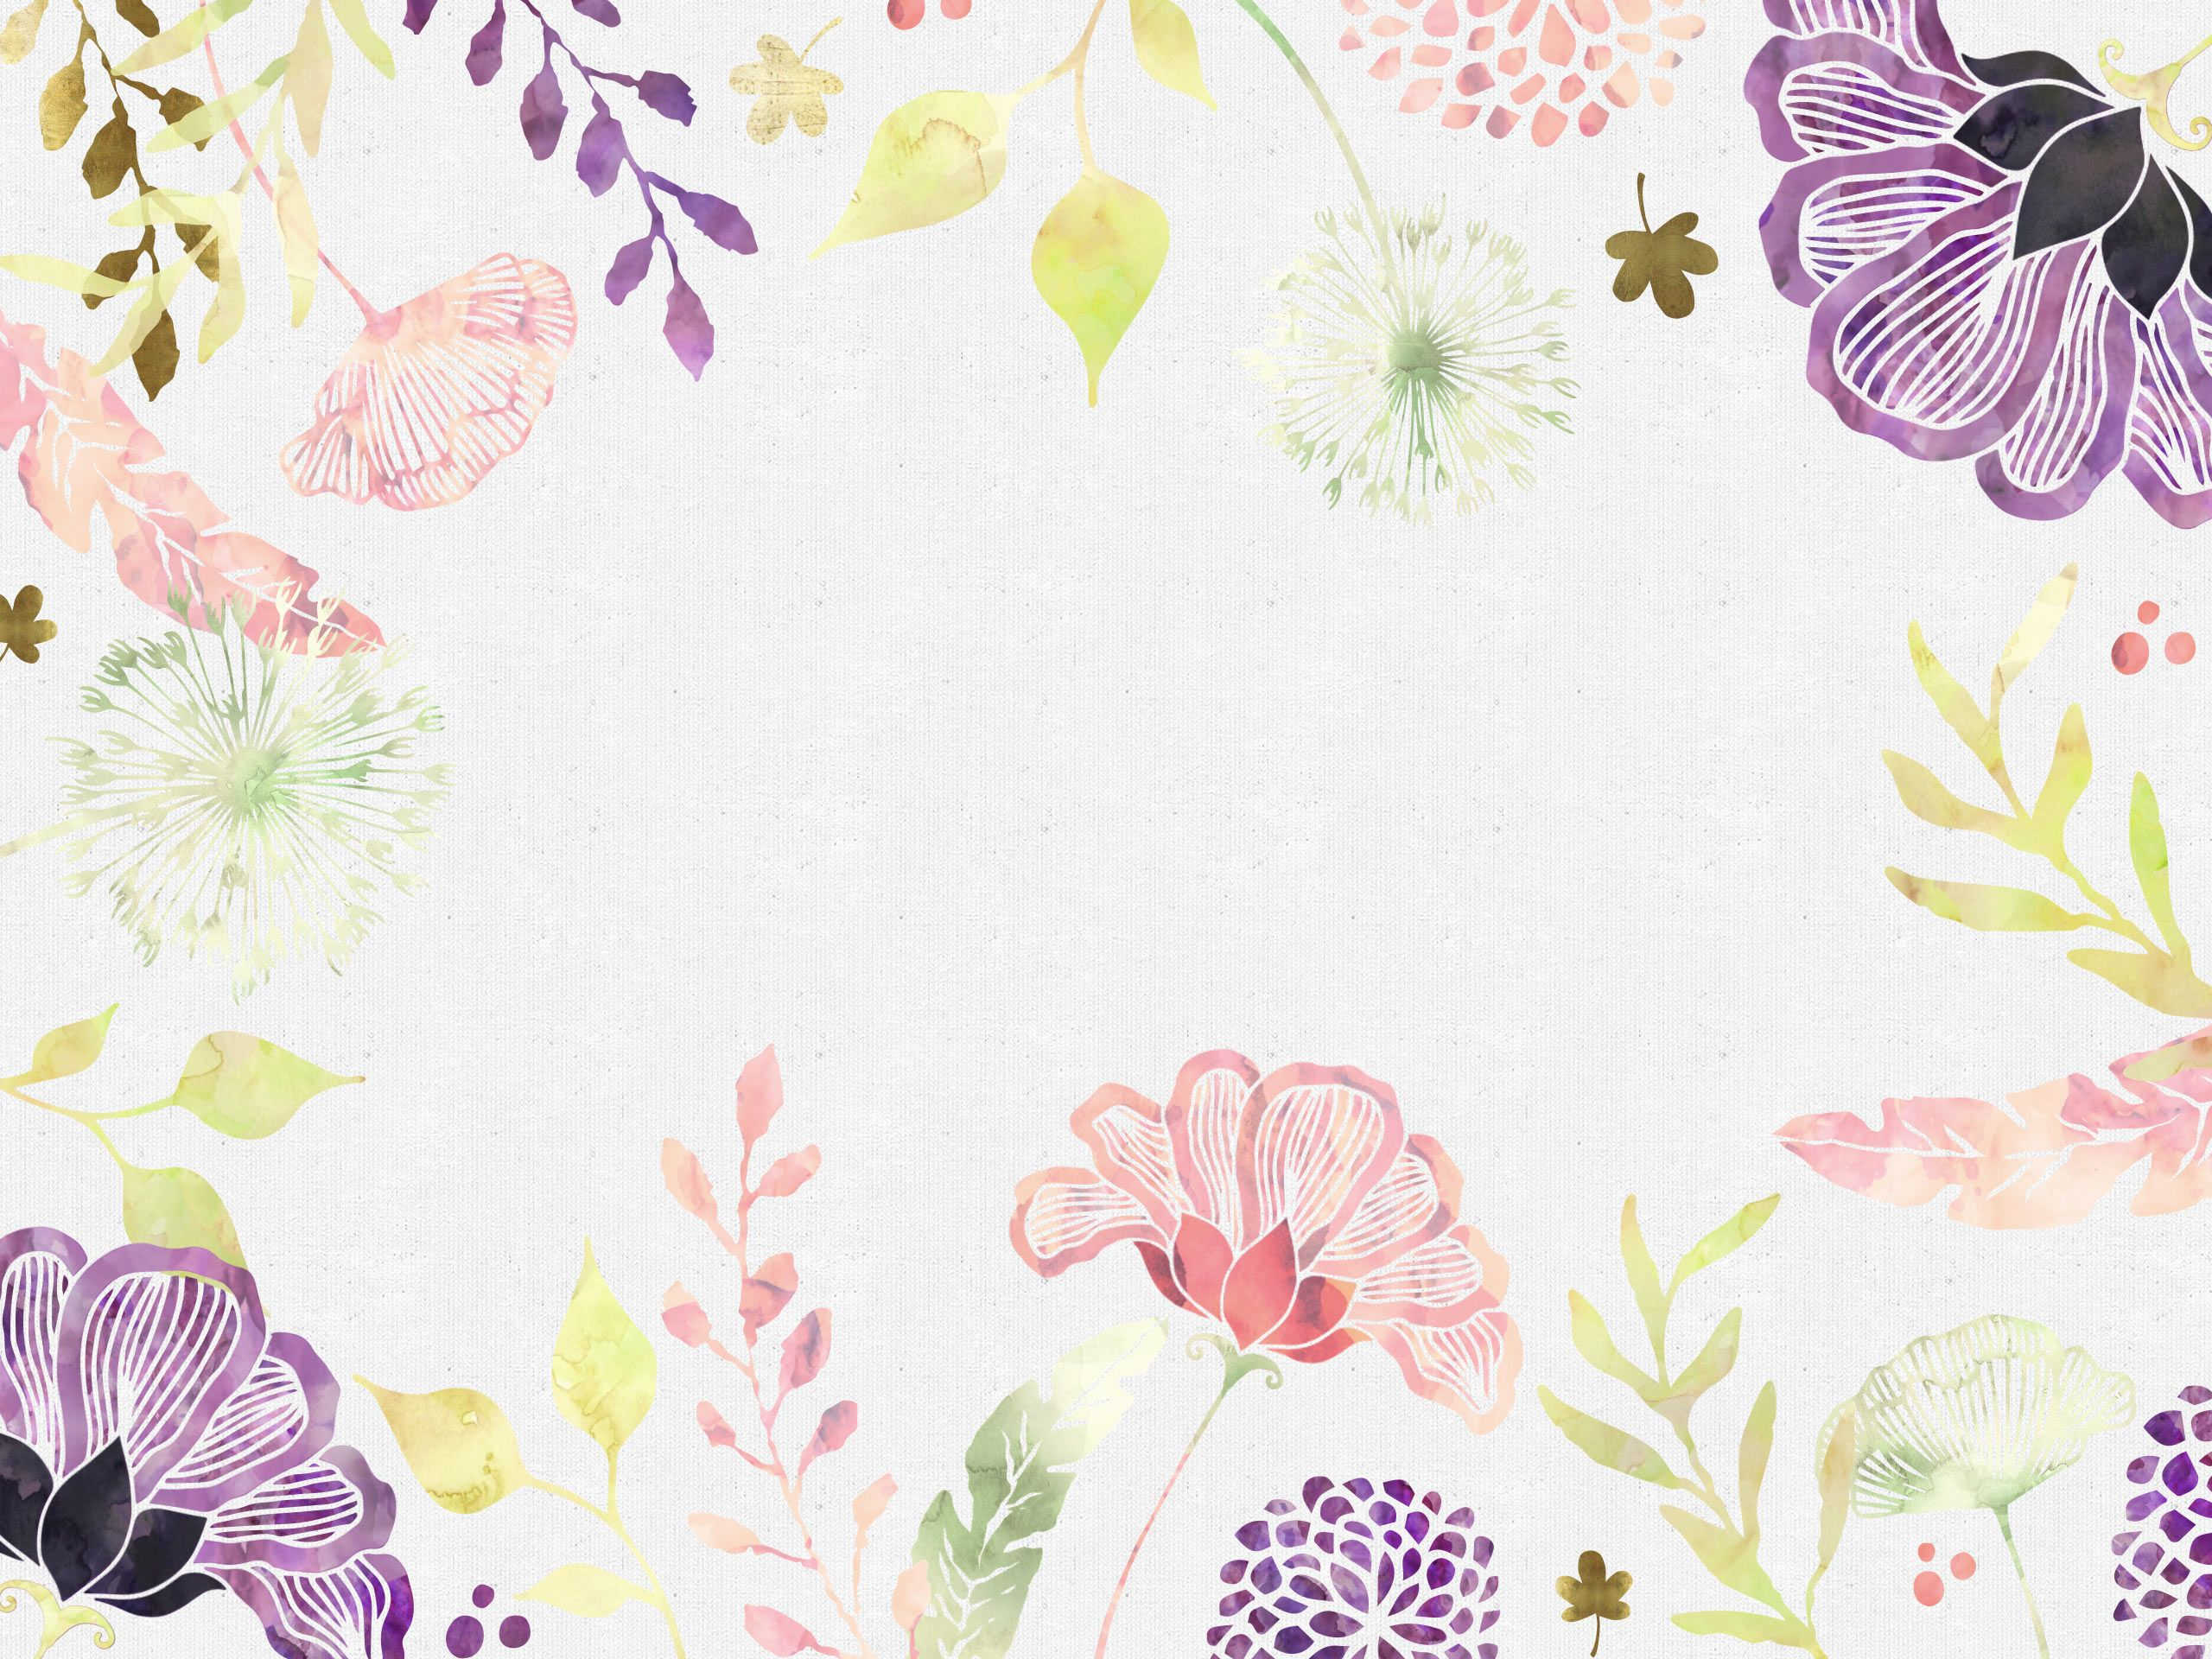 Free Floral Desktop Wallpaper I Choose Happiness Ipad